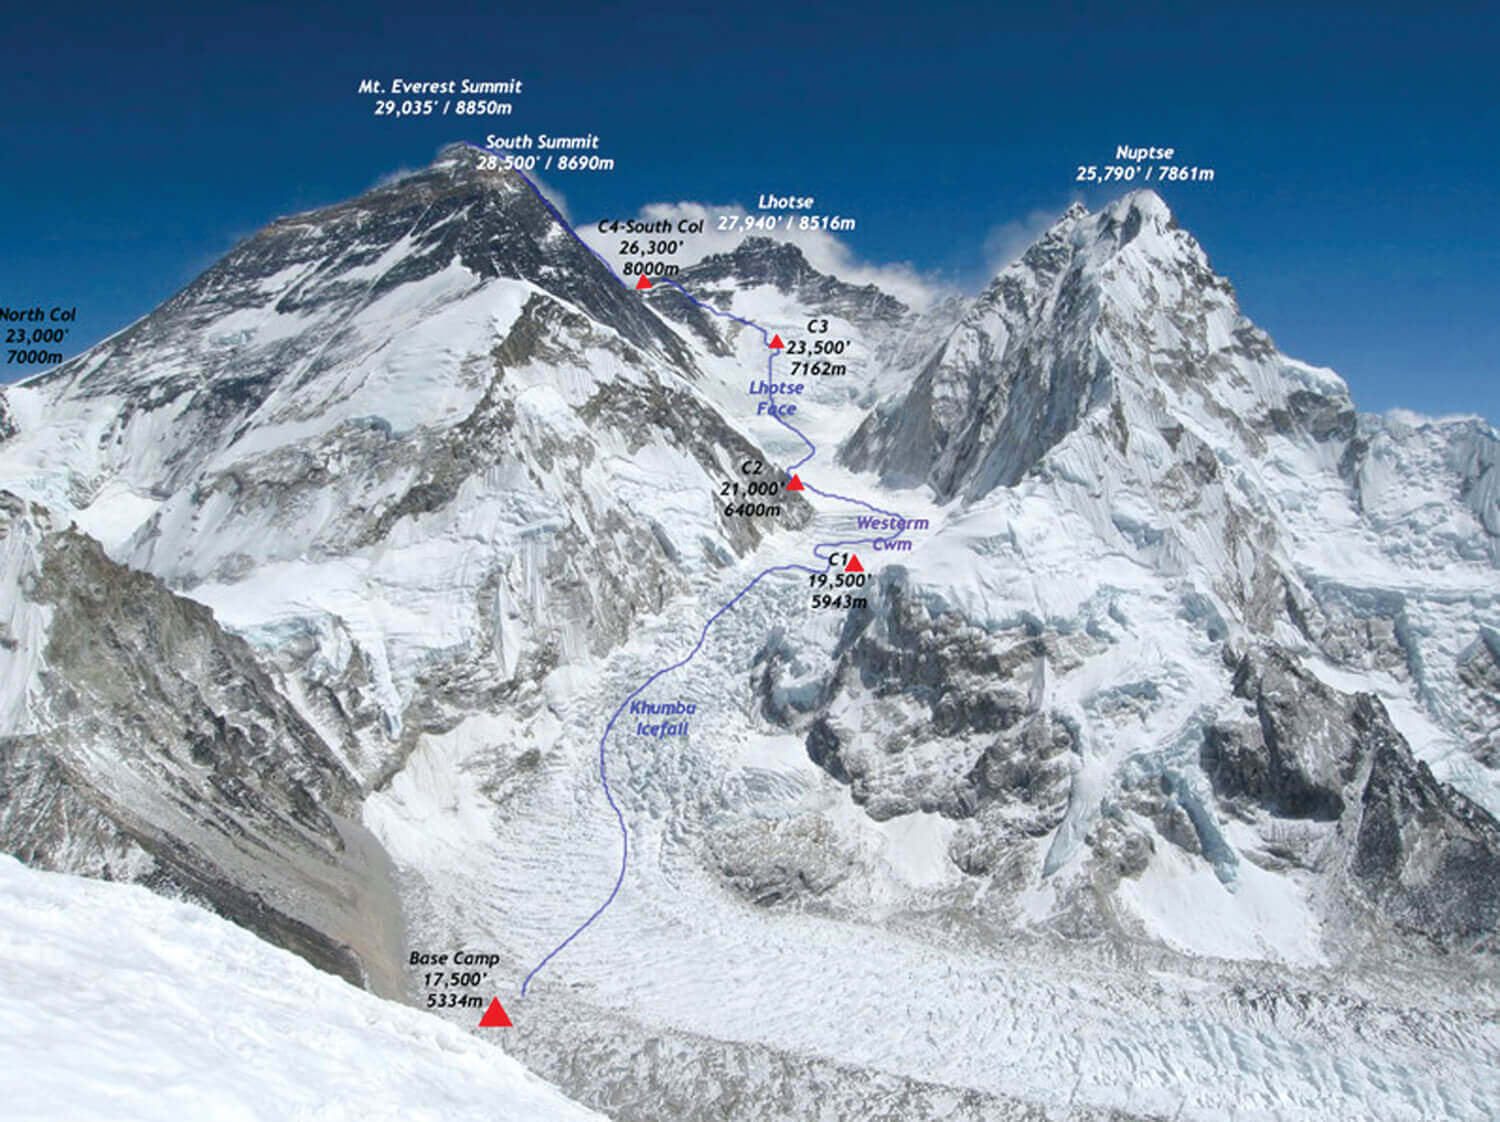 Sherpa guides scaled Everest setting new records